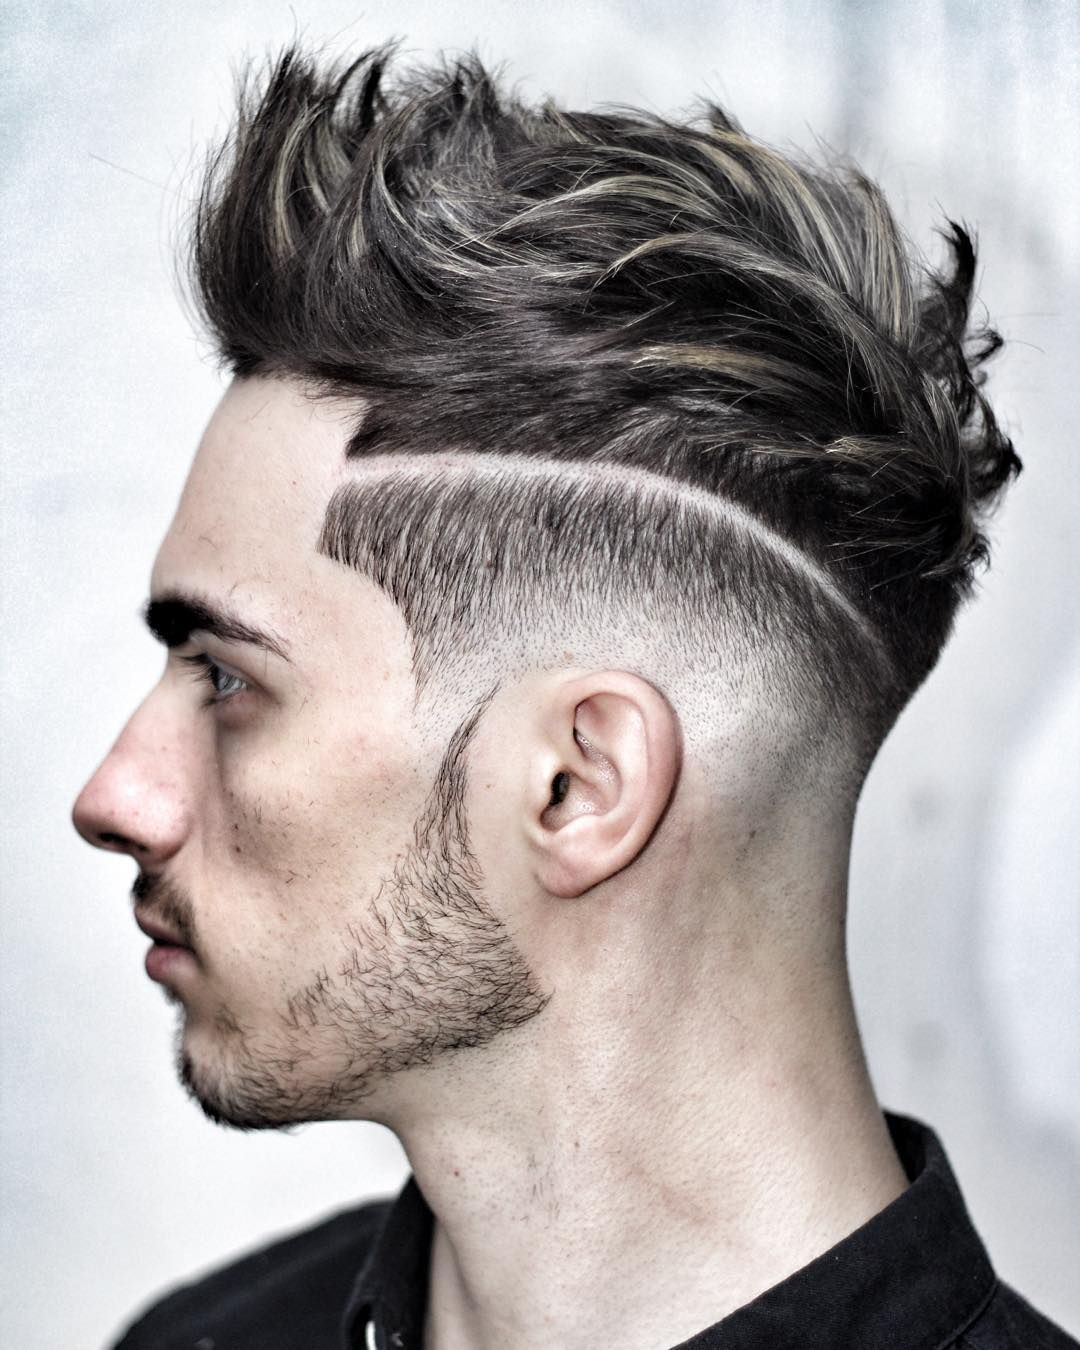 high low fade + hard part + textured quiff | that hair tho